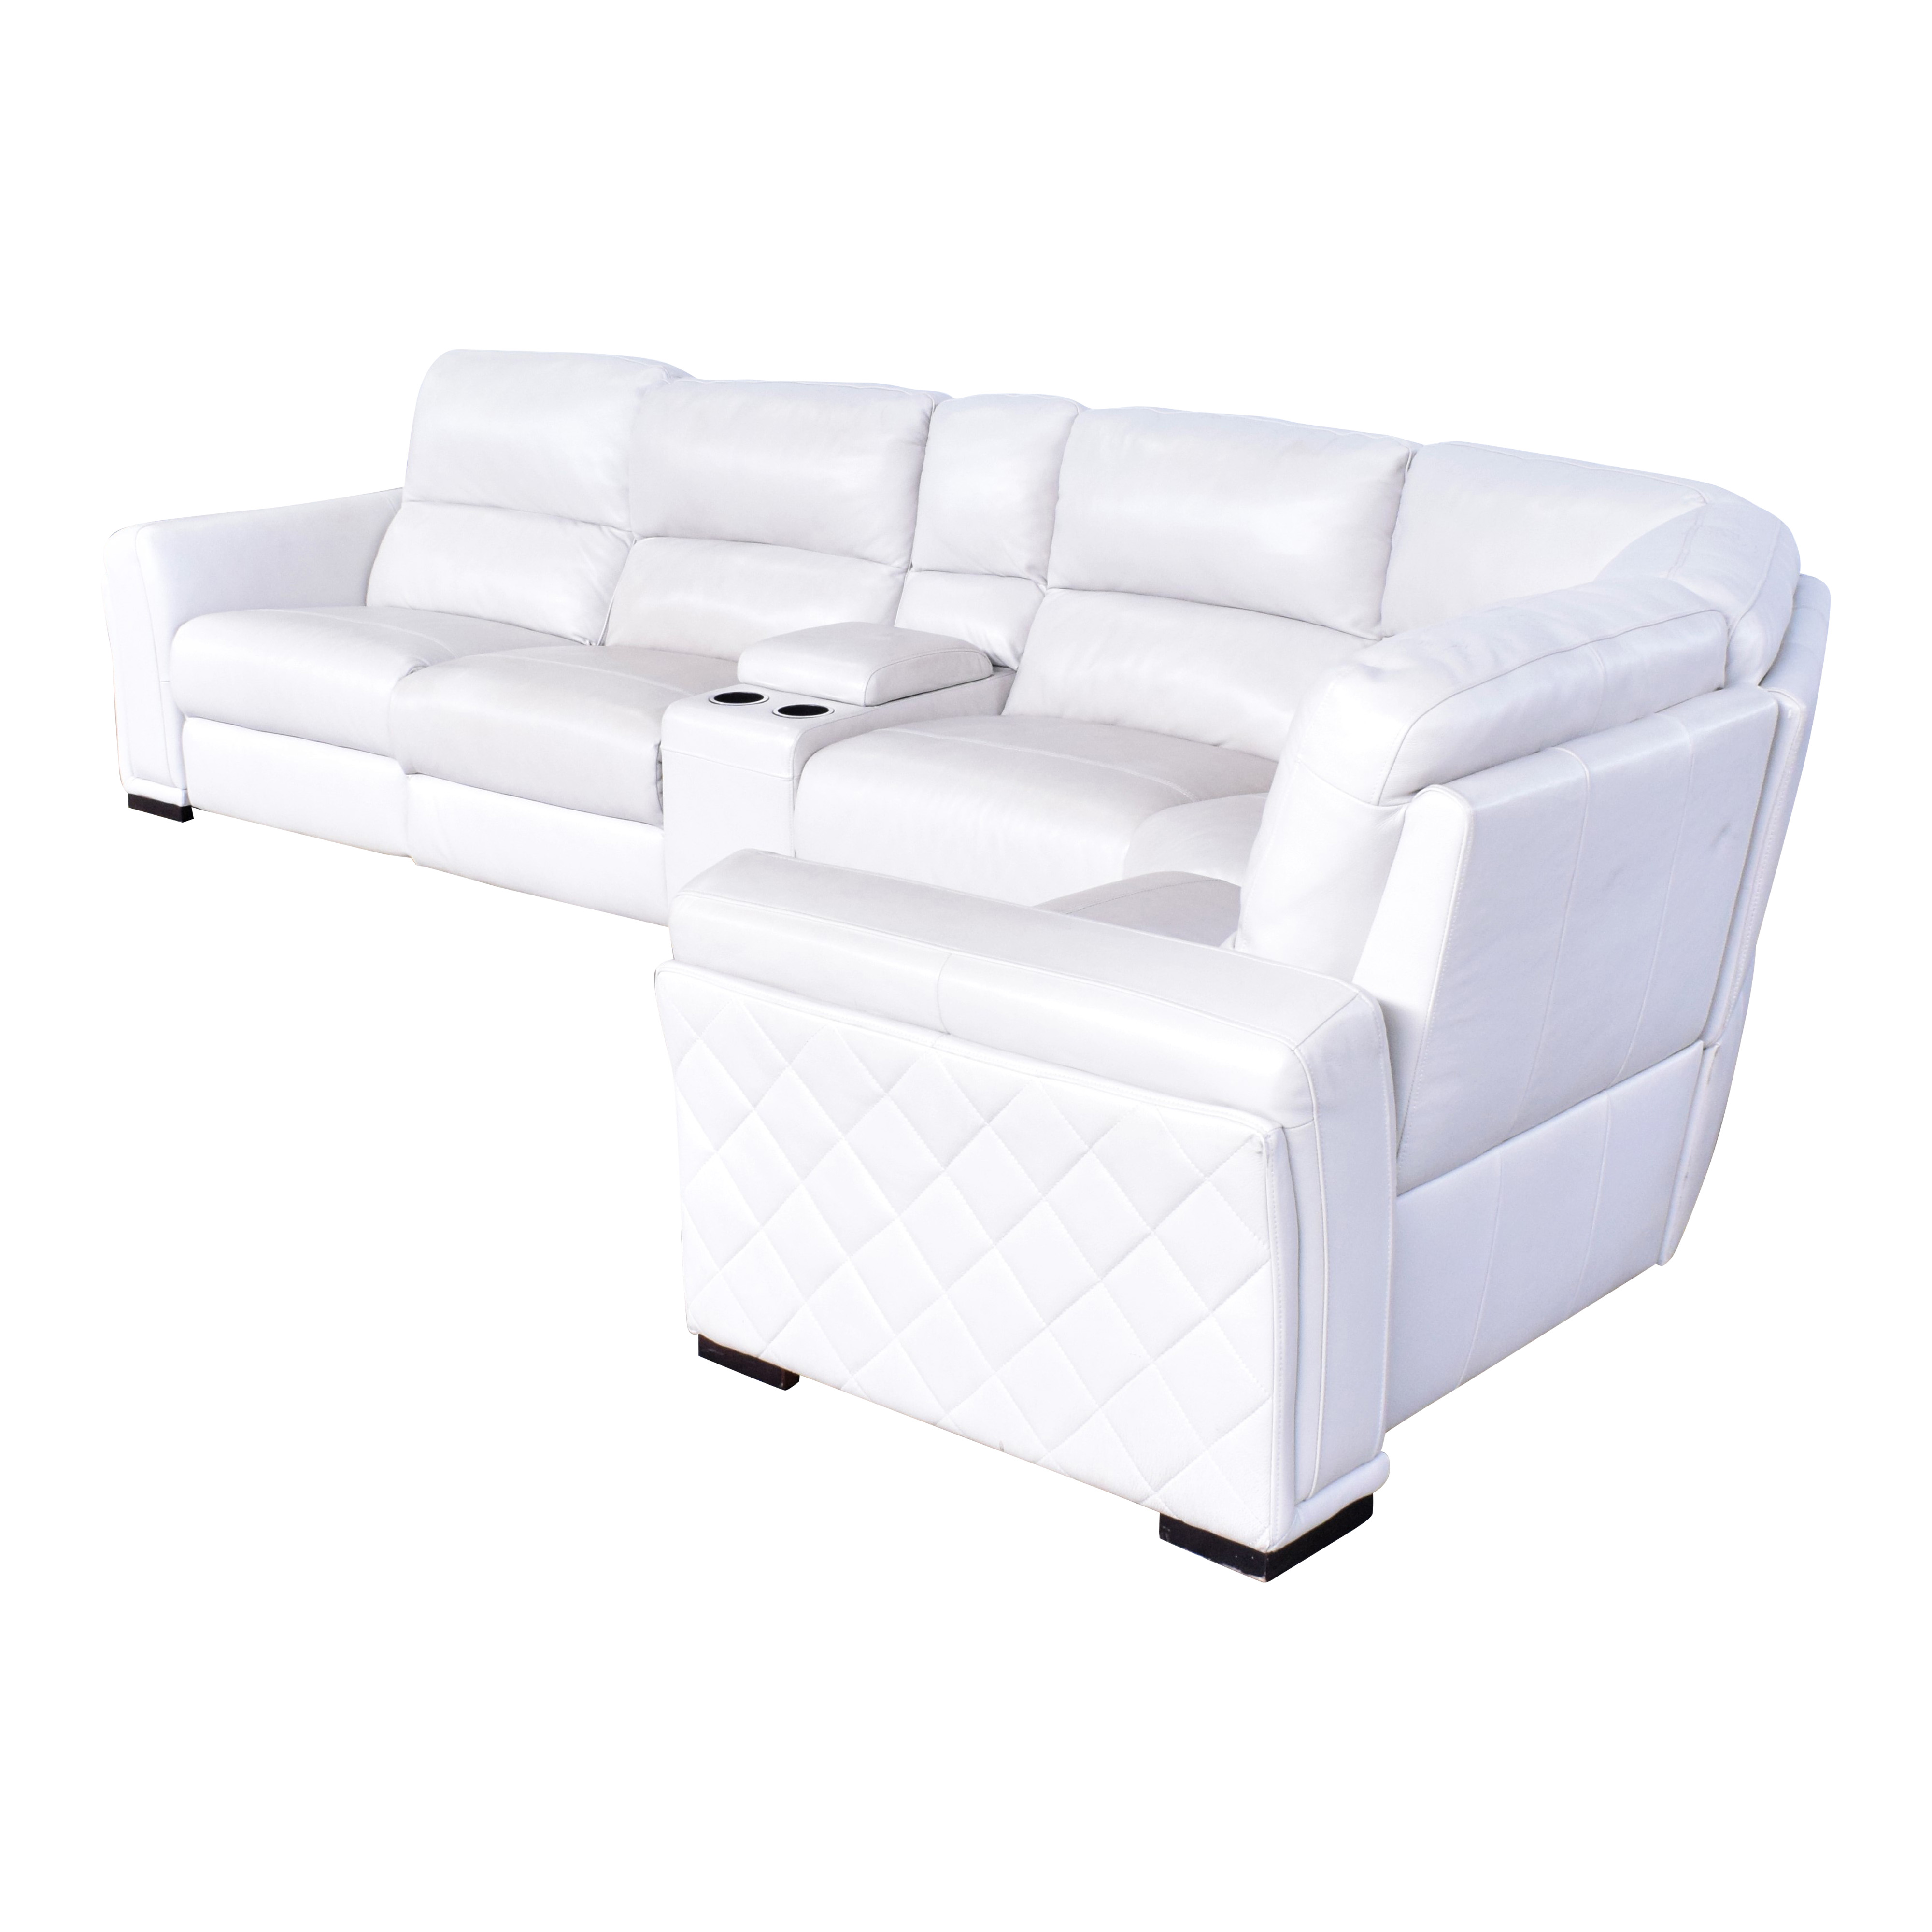 Macy's Macy's Recliner Wedge Sectional off white